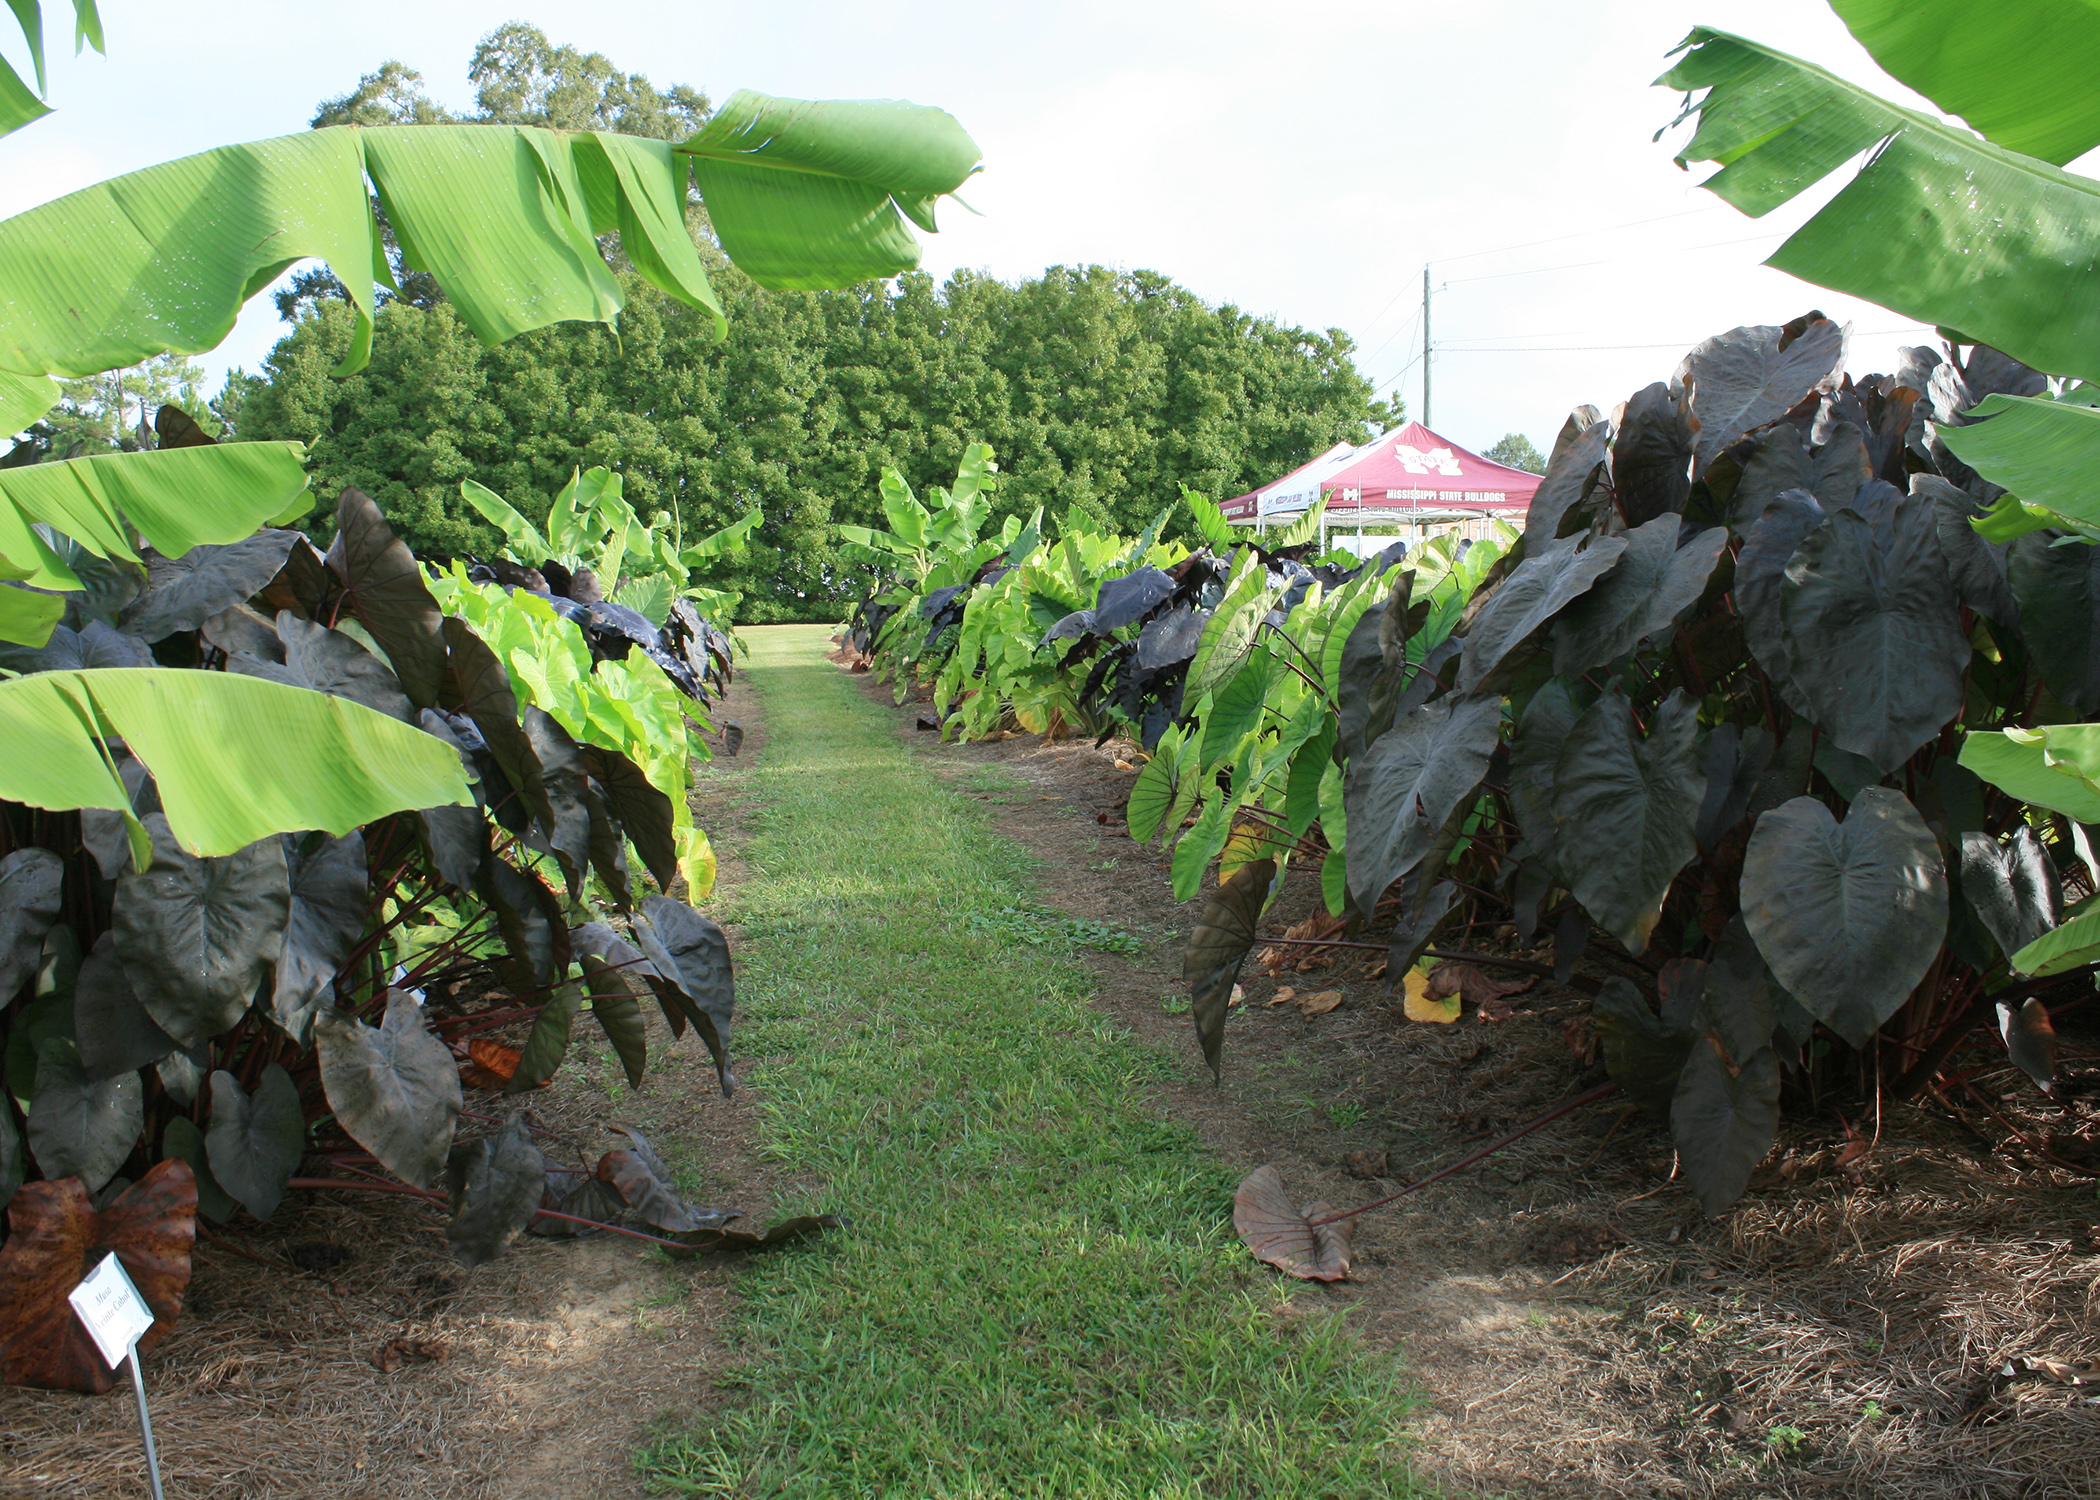 This garden full of elephant ears is growing in a plant trial in Biloxi at the Mississippi State University Coastal Research and Extension Center. Foliage colors range from greens to black. (Photo by MSU Extension/Gary Bachman)